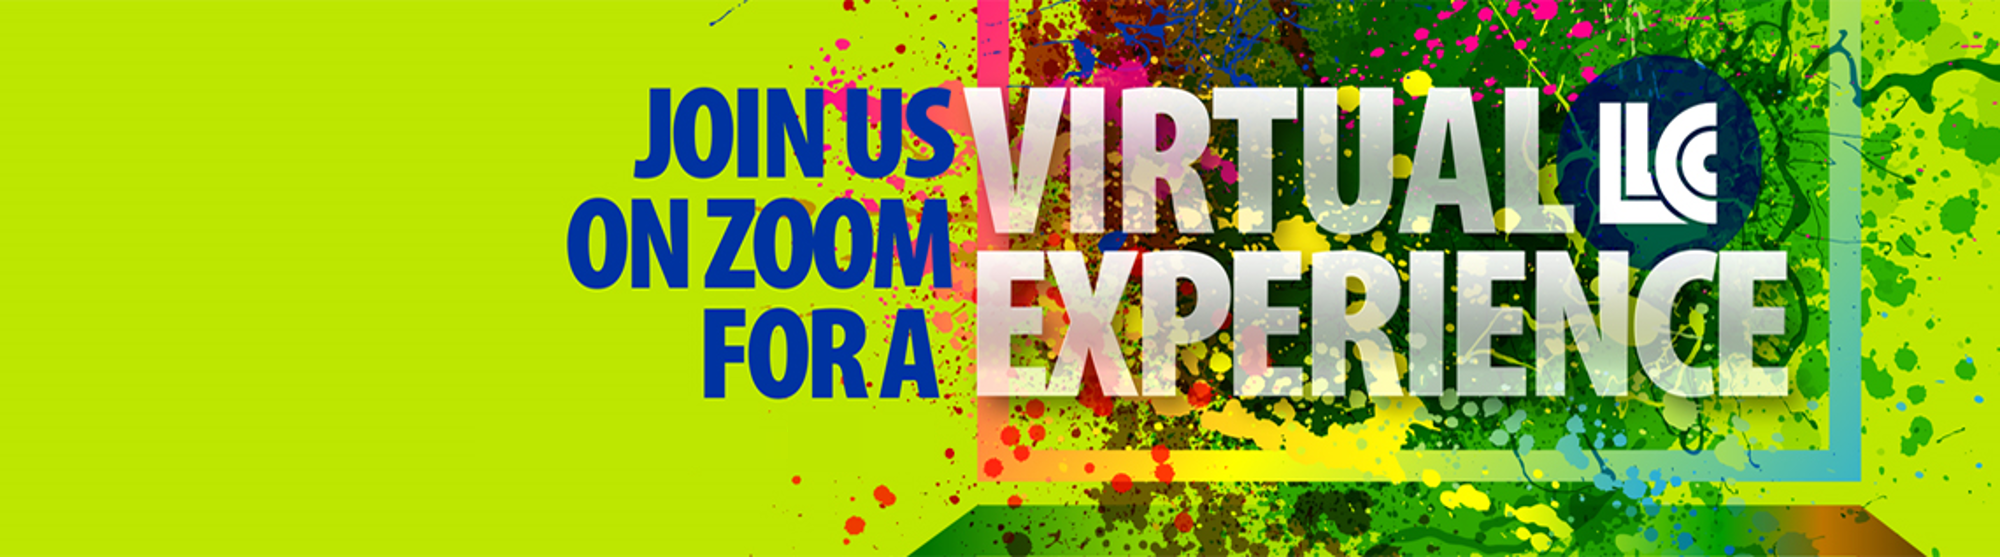 Join us on Zoom for a Virtual LLCC Experience